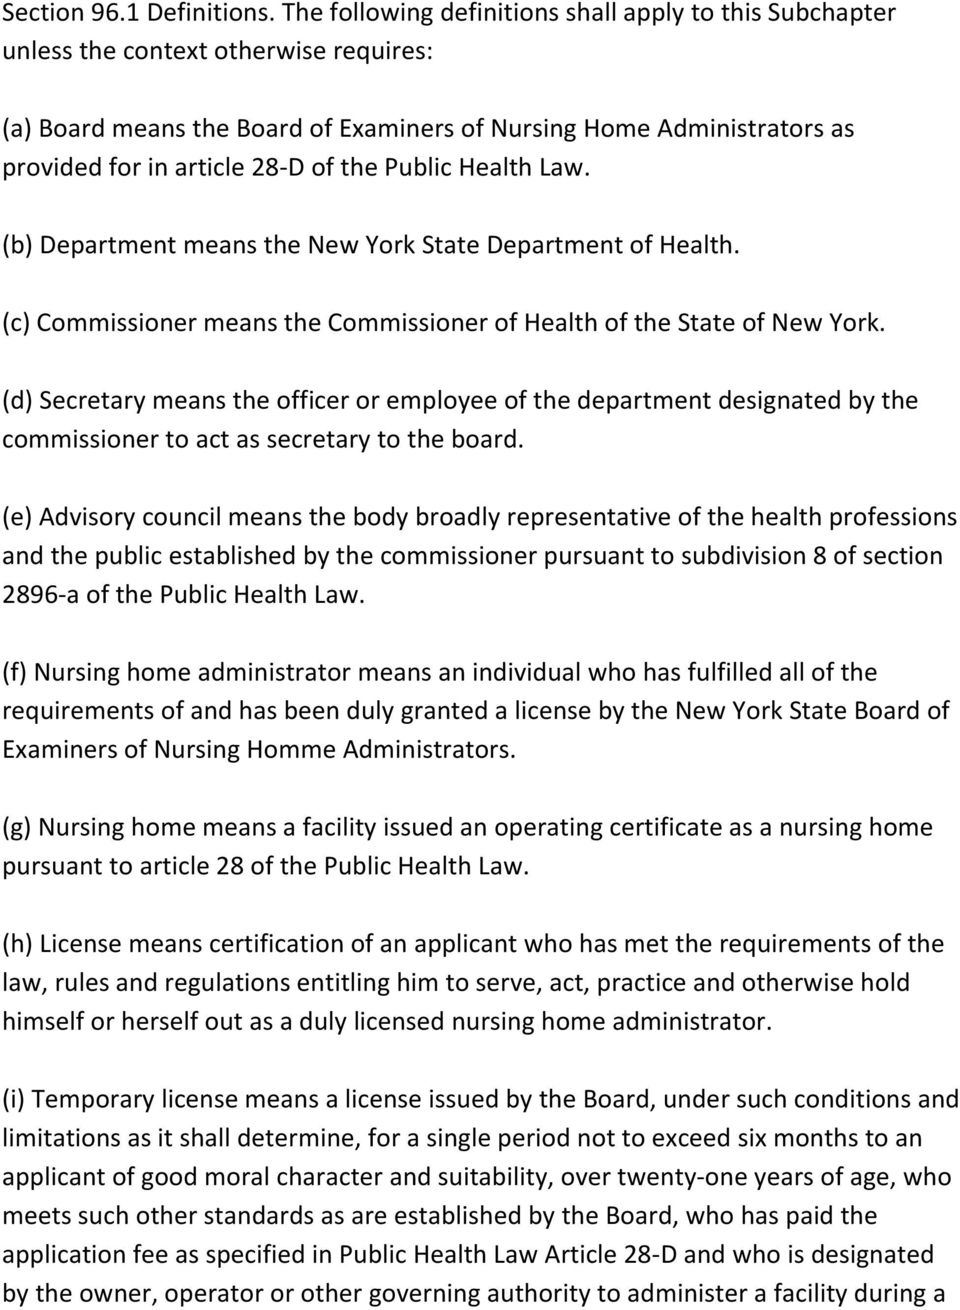 of the Public Health Law. (b) Department means the New York State Department of Health. (c) Commissioner means the Commissioner of Health of the State of New York.